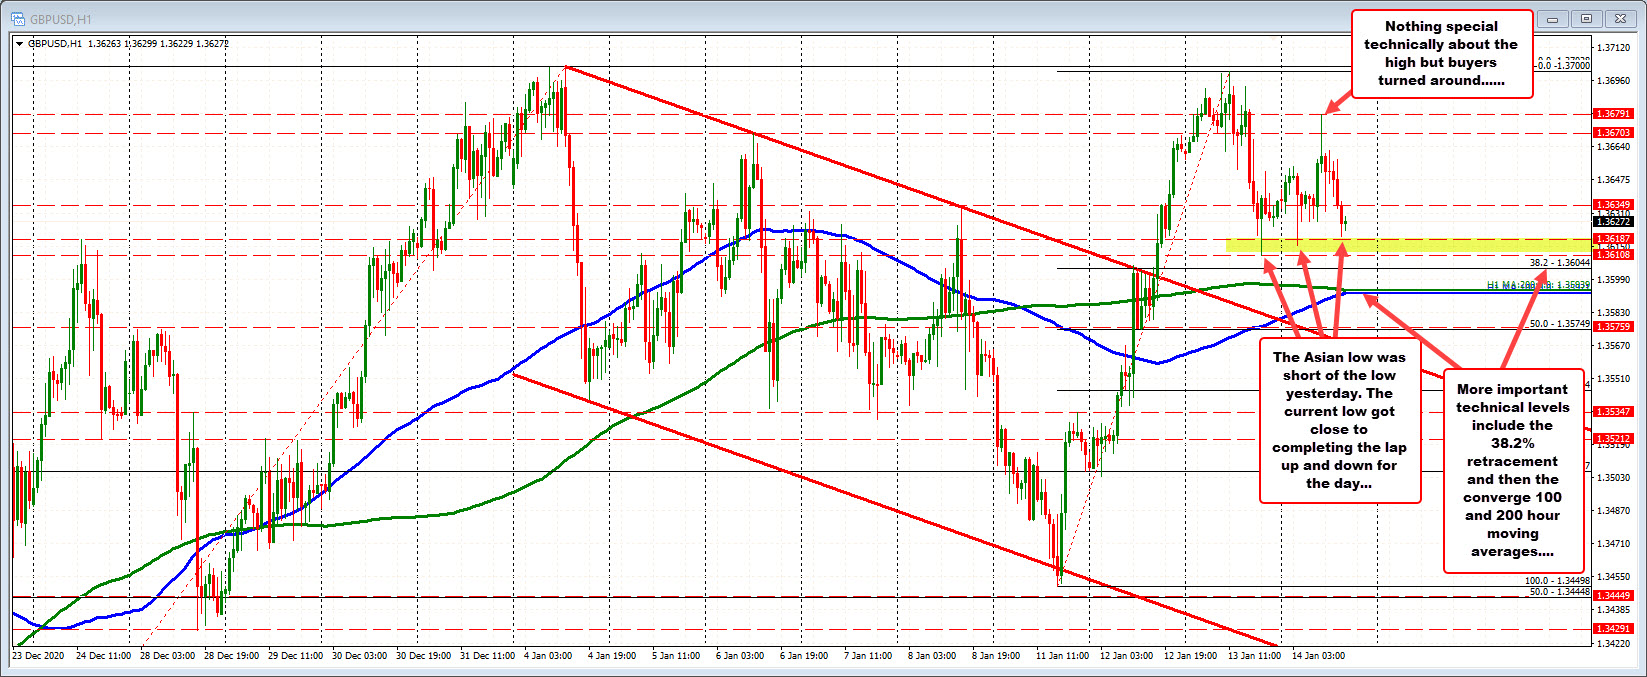 GBPUSD retraces the earlier gains